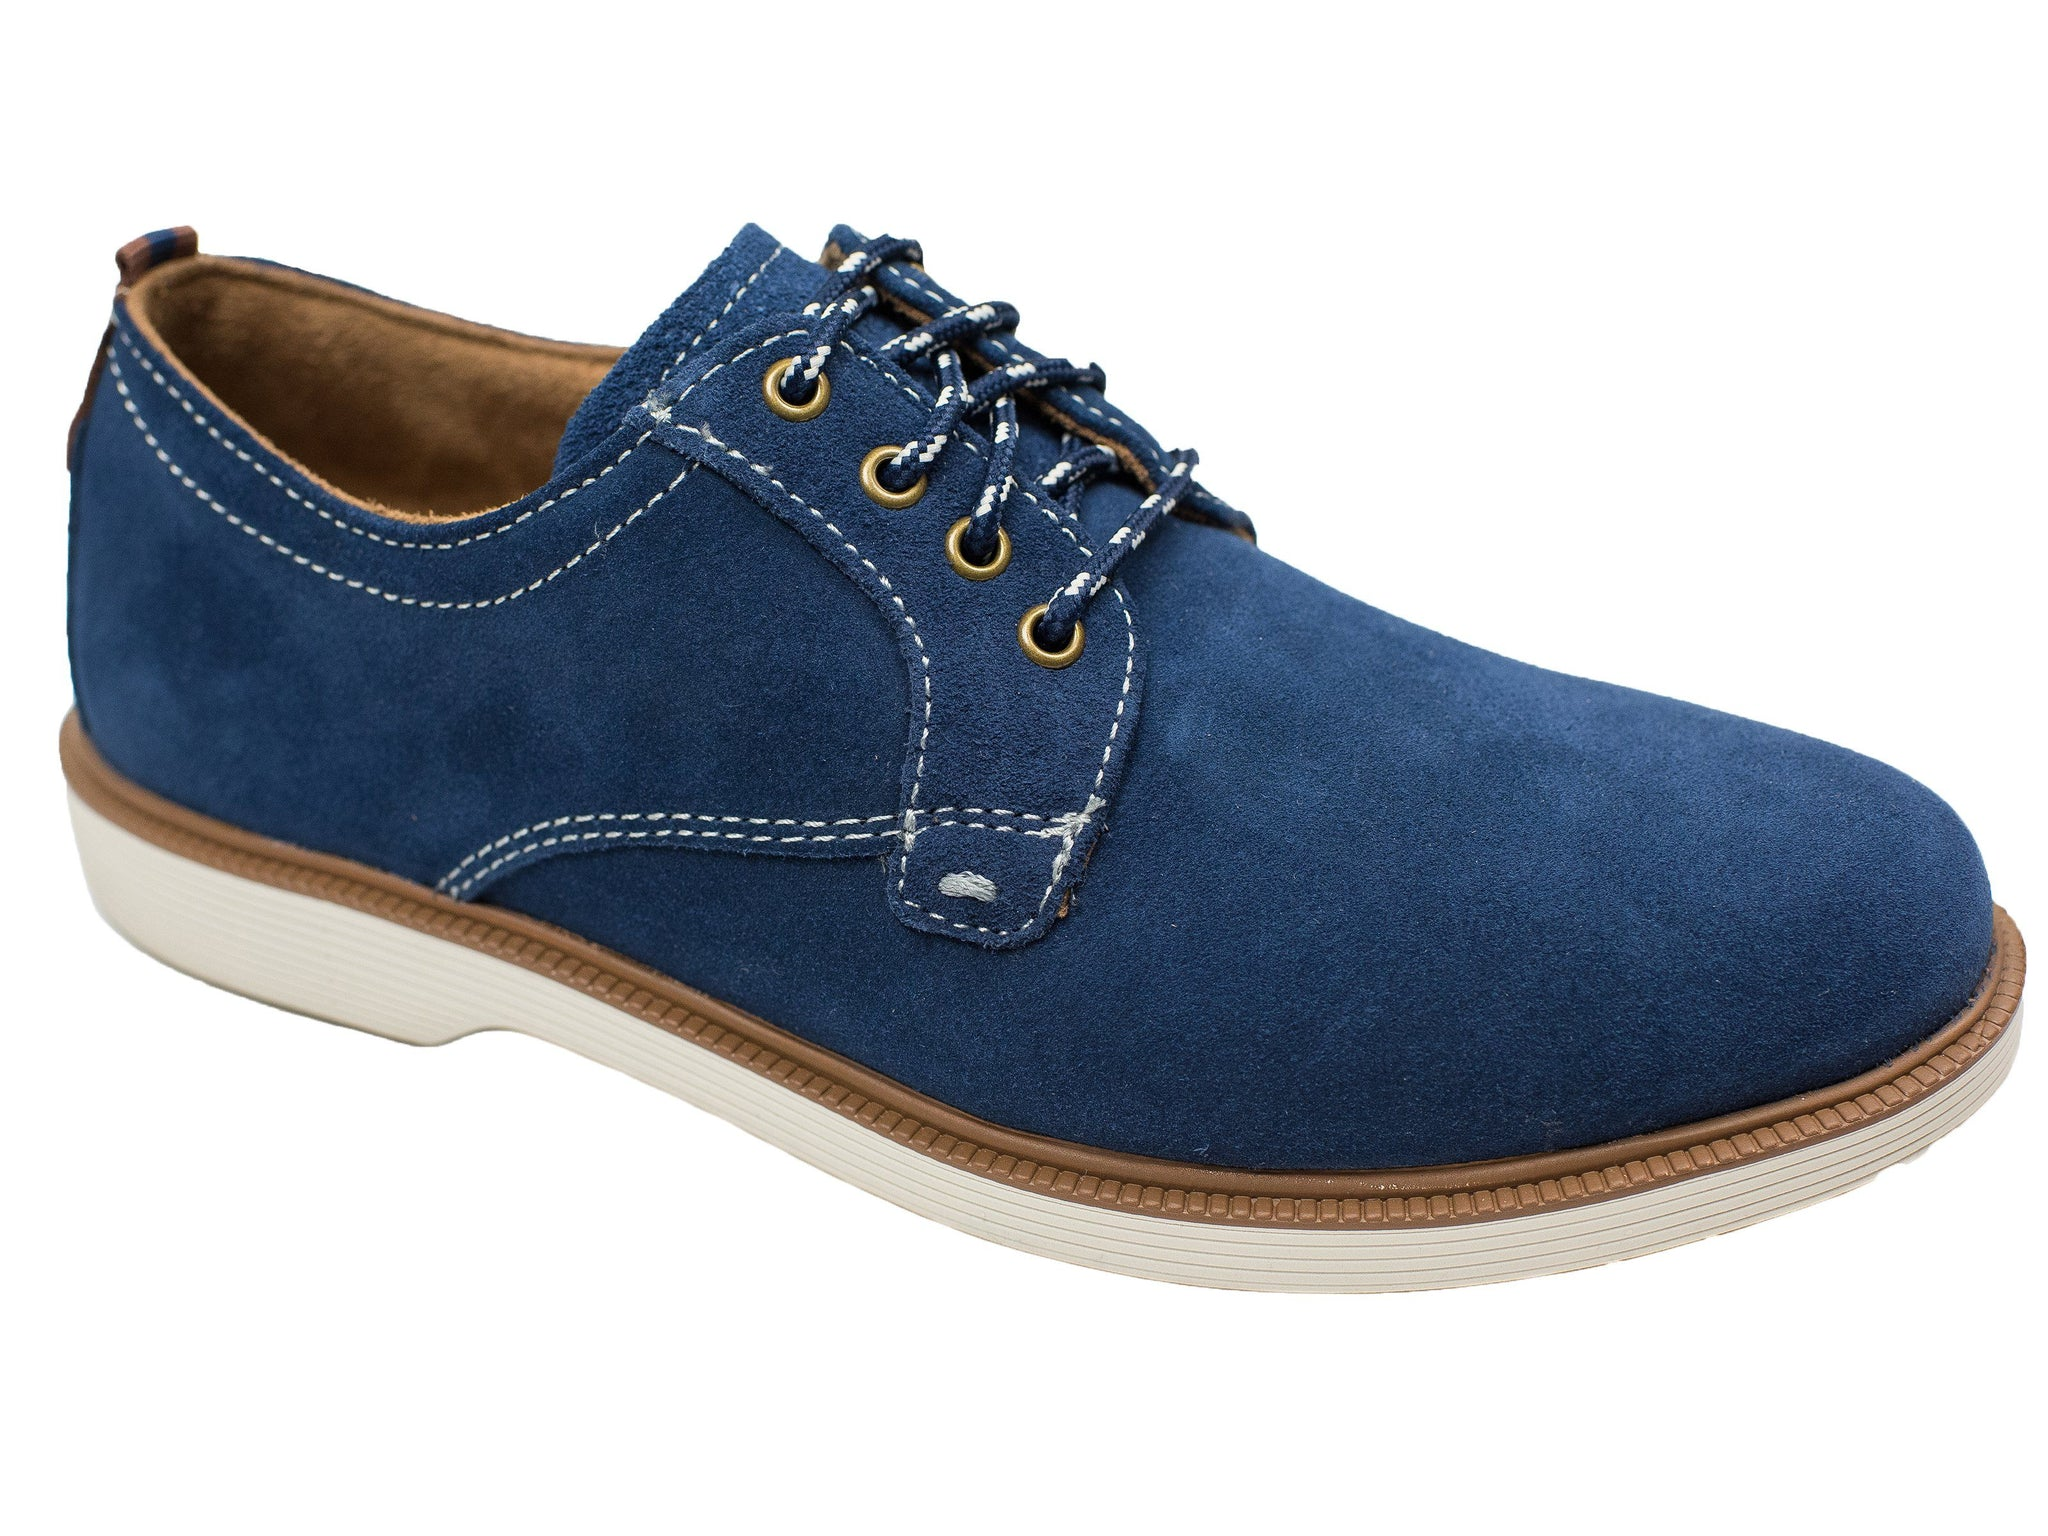 Florsheim 28396 Boy's Shoe - Plain Toe Ox-Suede-Navy